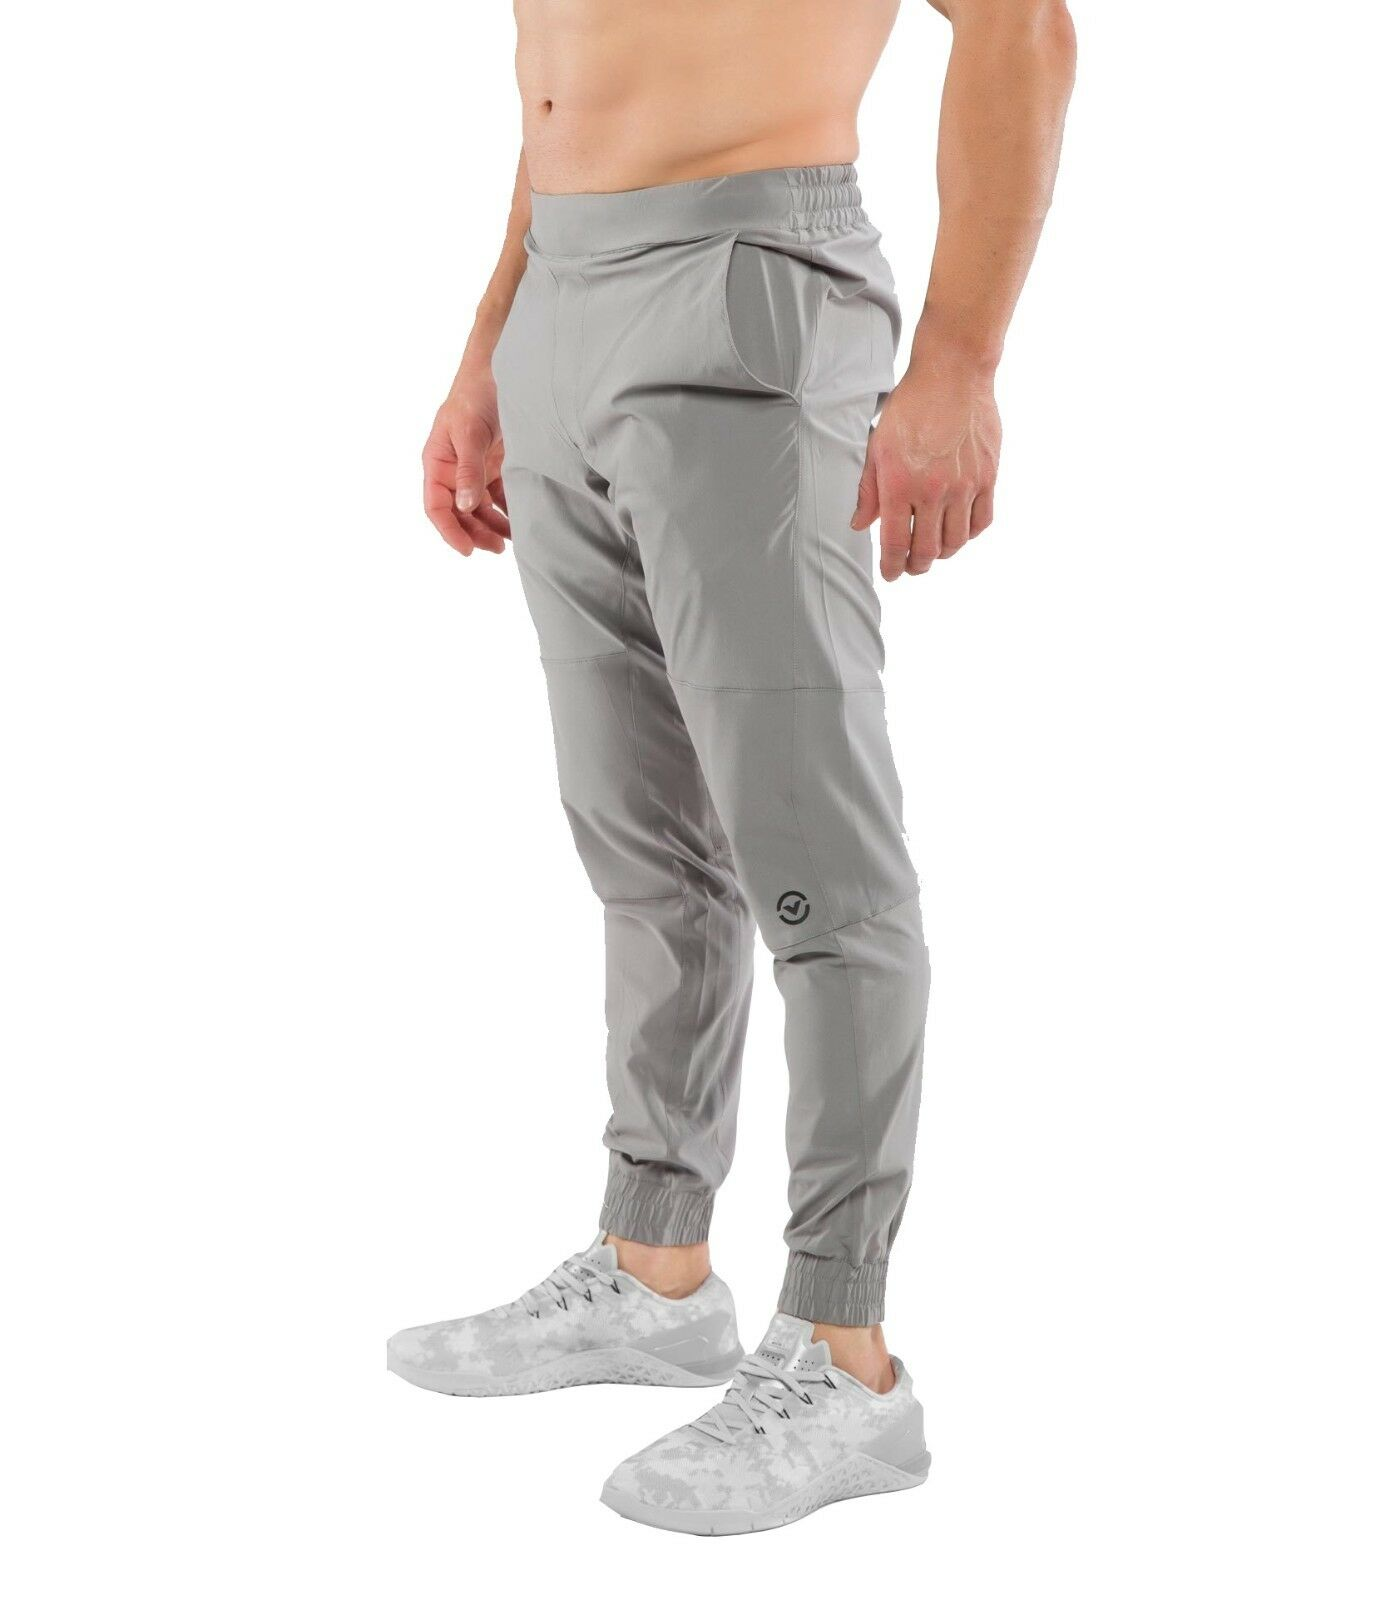 VIRUS  ST7  TRIWIRE FITTED PANTS GREY,Crossfit,Gym,Workout,Recovery  professional integrated online shopping mall